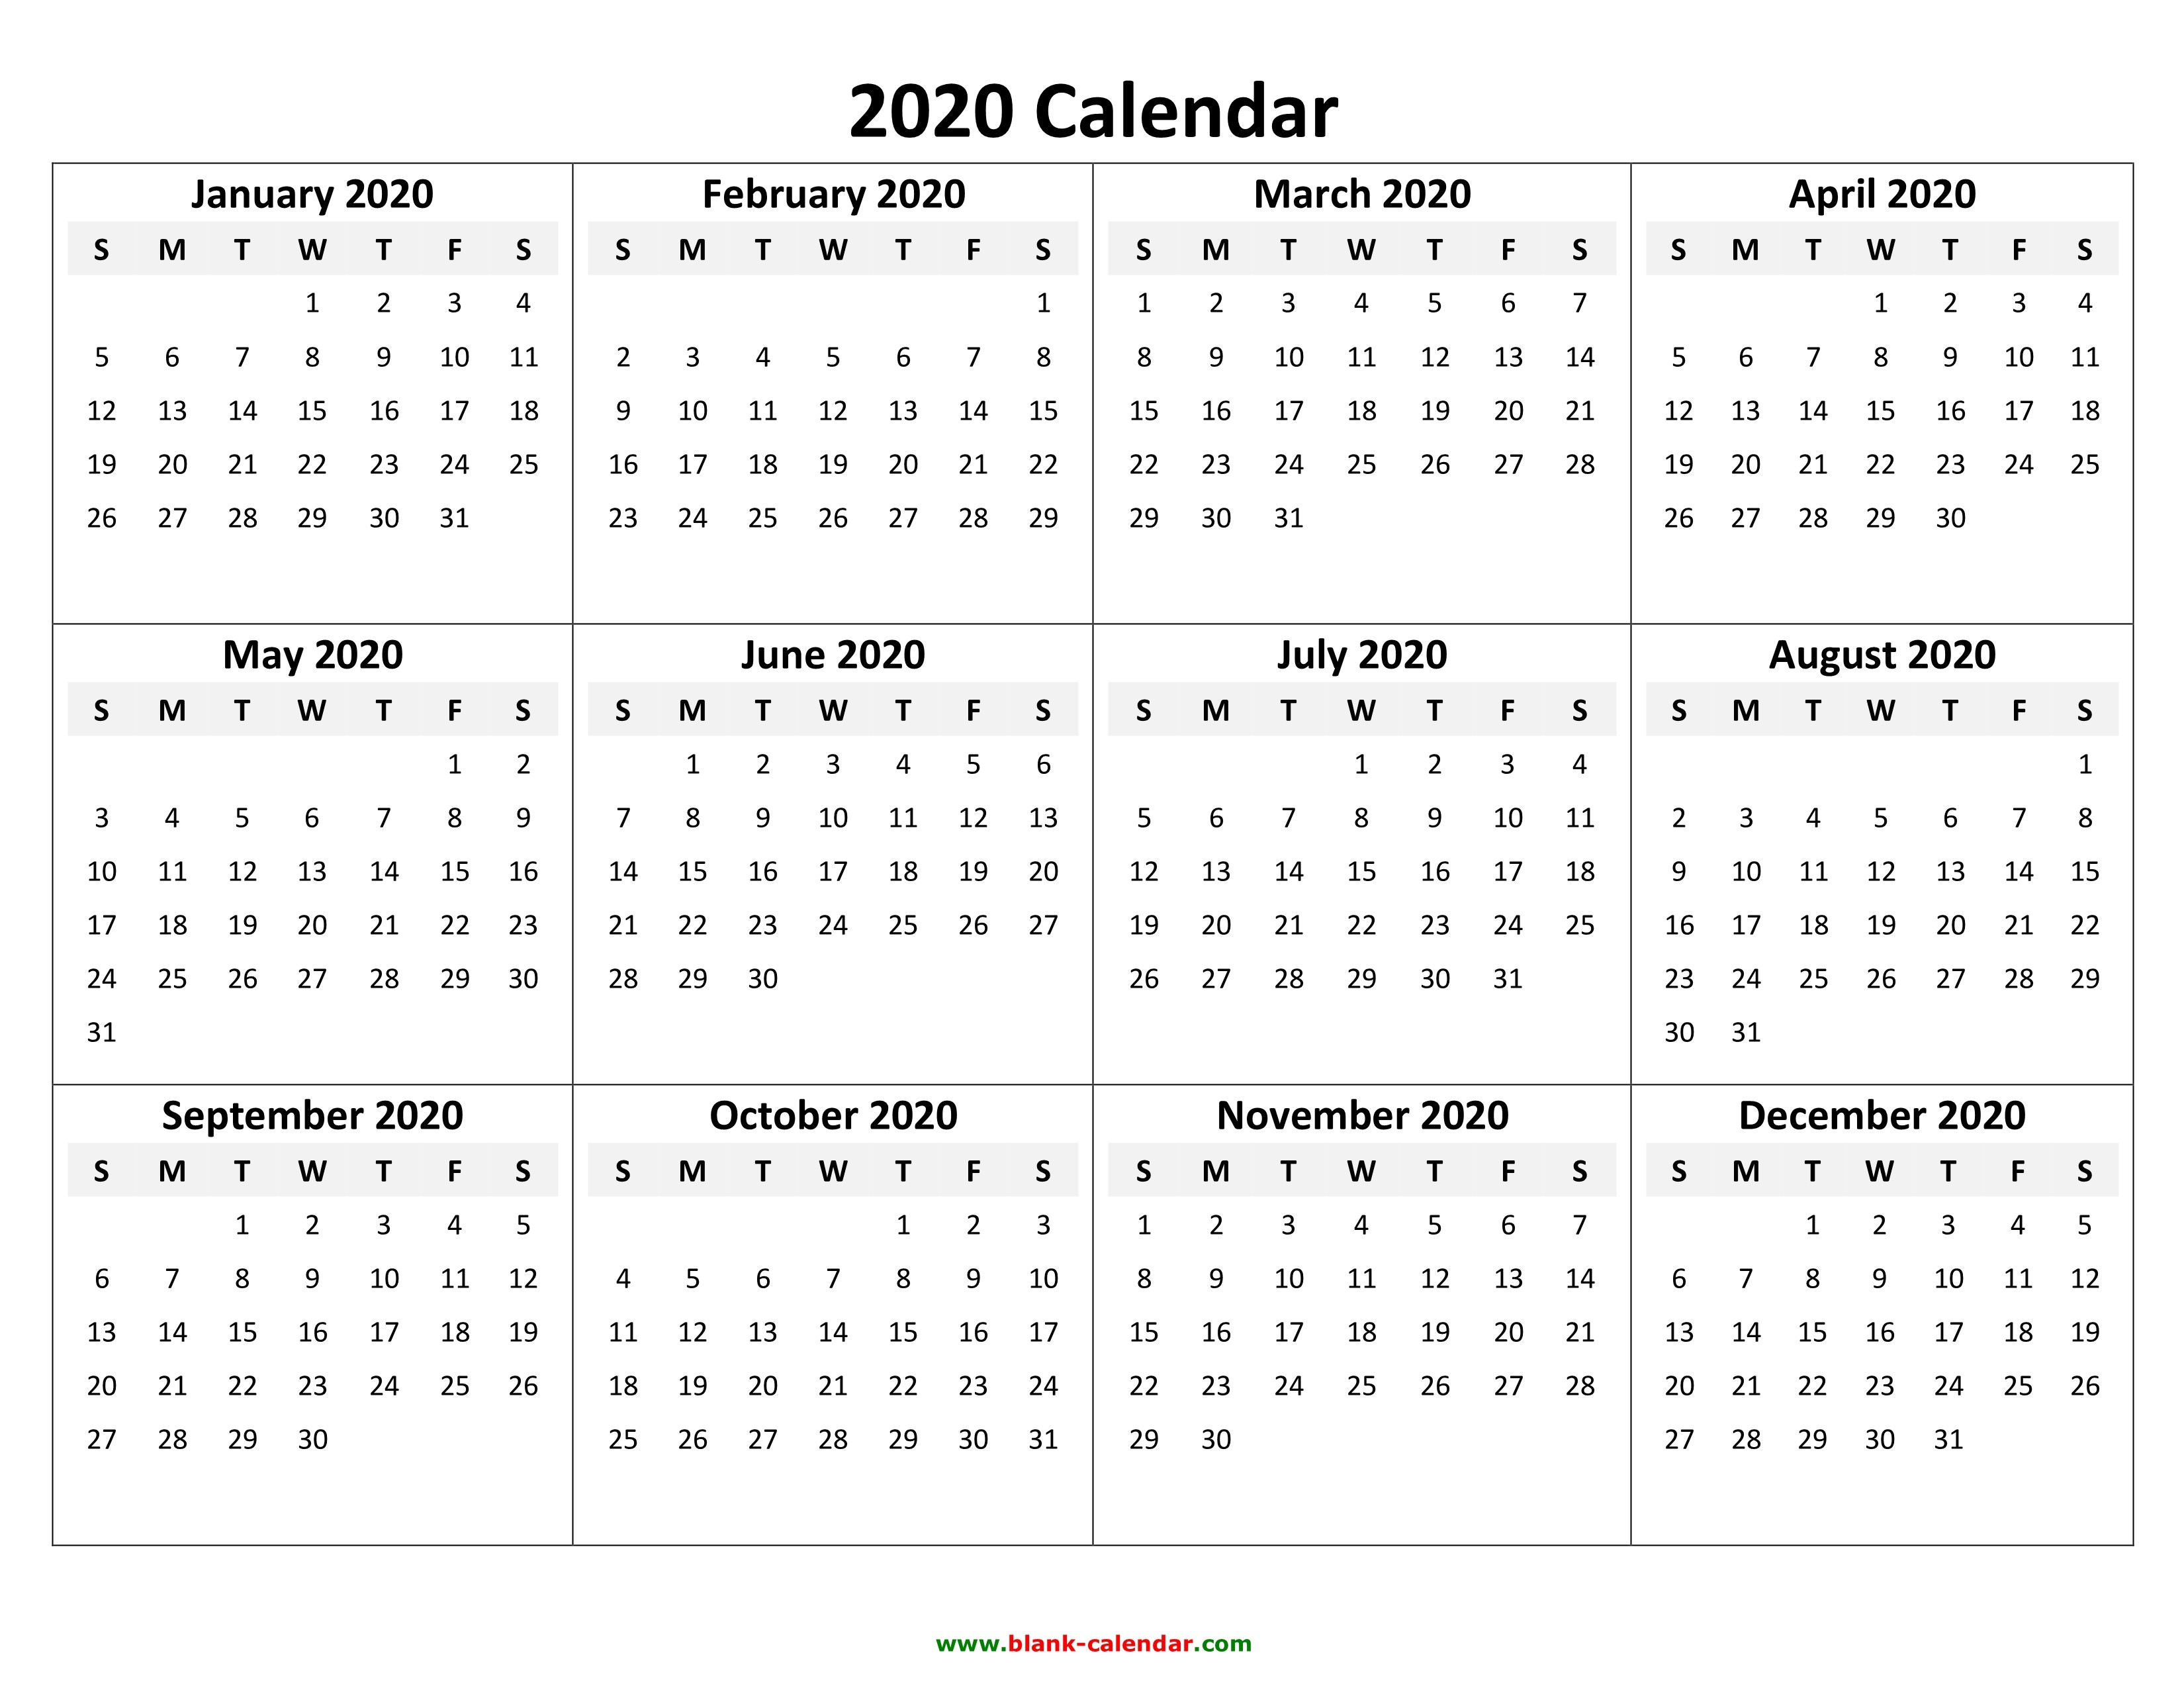 Free Printable Calendar Templates For 2020 Yearly Calendar 2020 intended for 2020 Free Printable Coloring Calendar